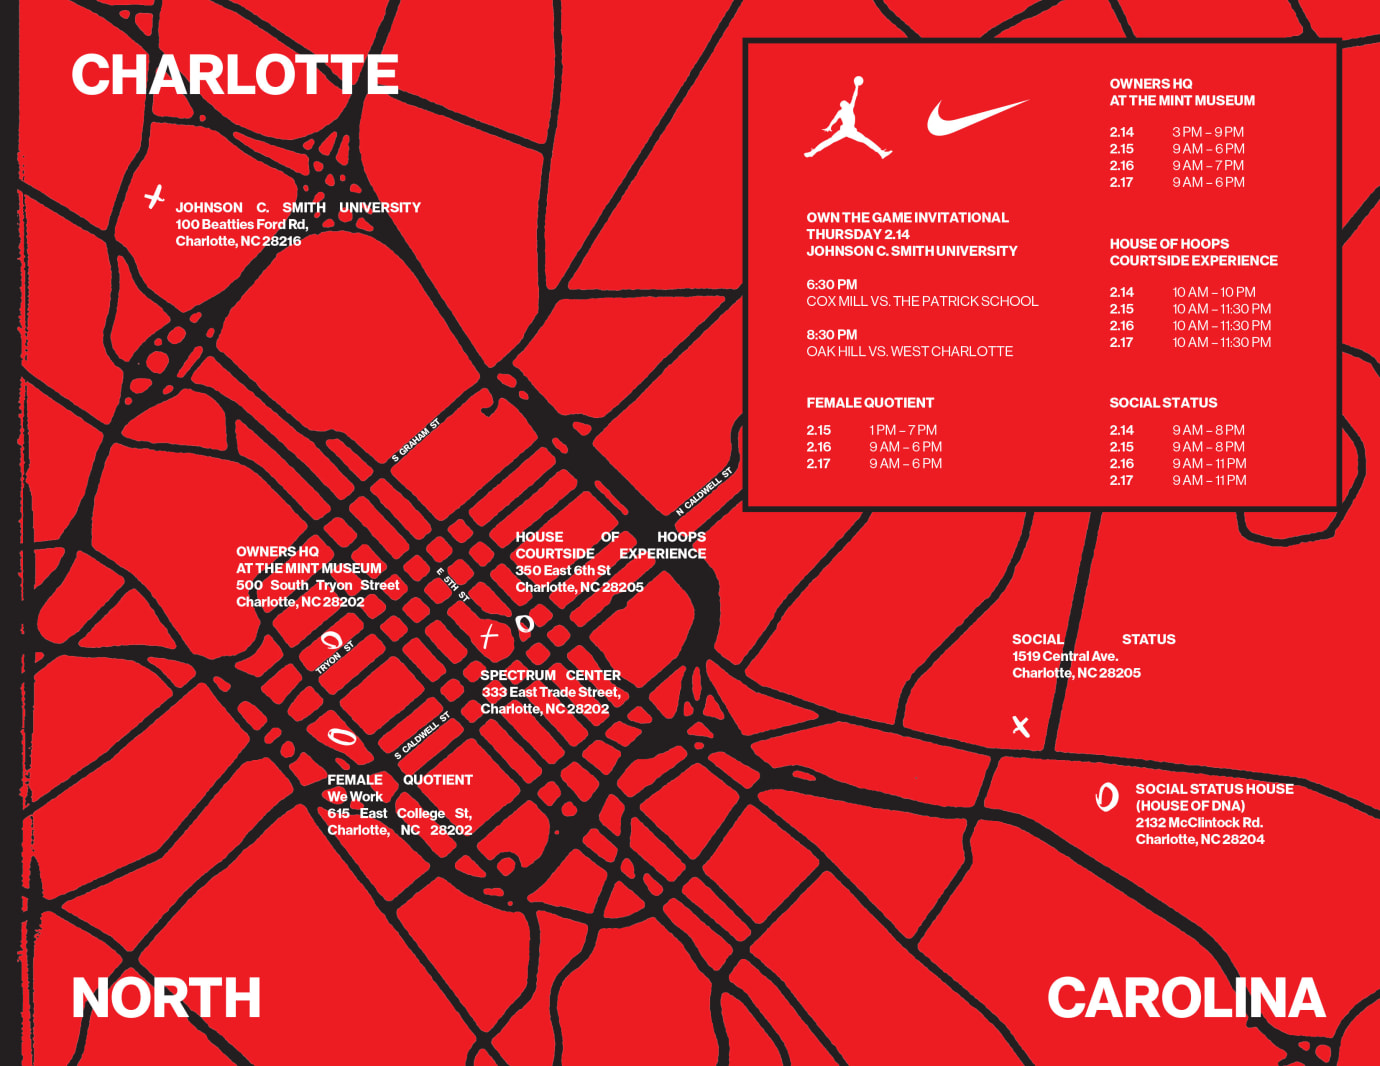 Nike/Jordan Brand 2019 NBA All-Star Weekend Charlotte Events 1